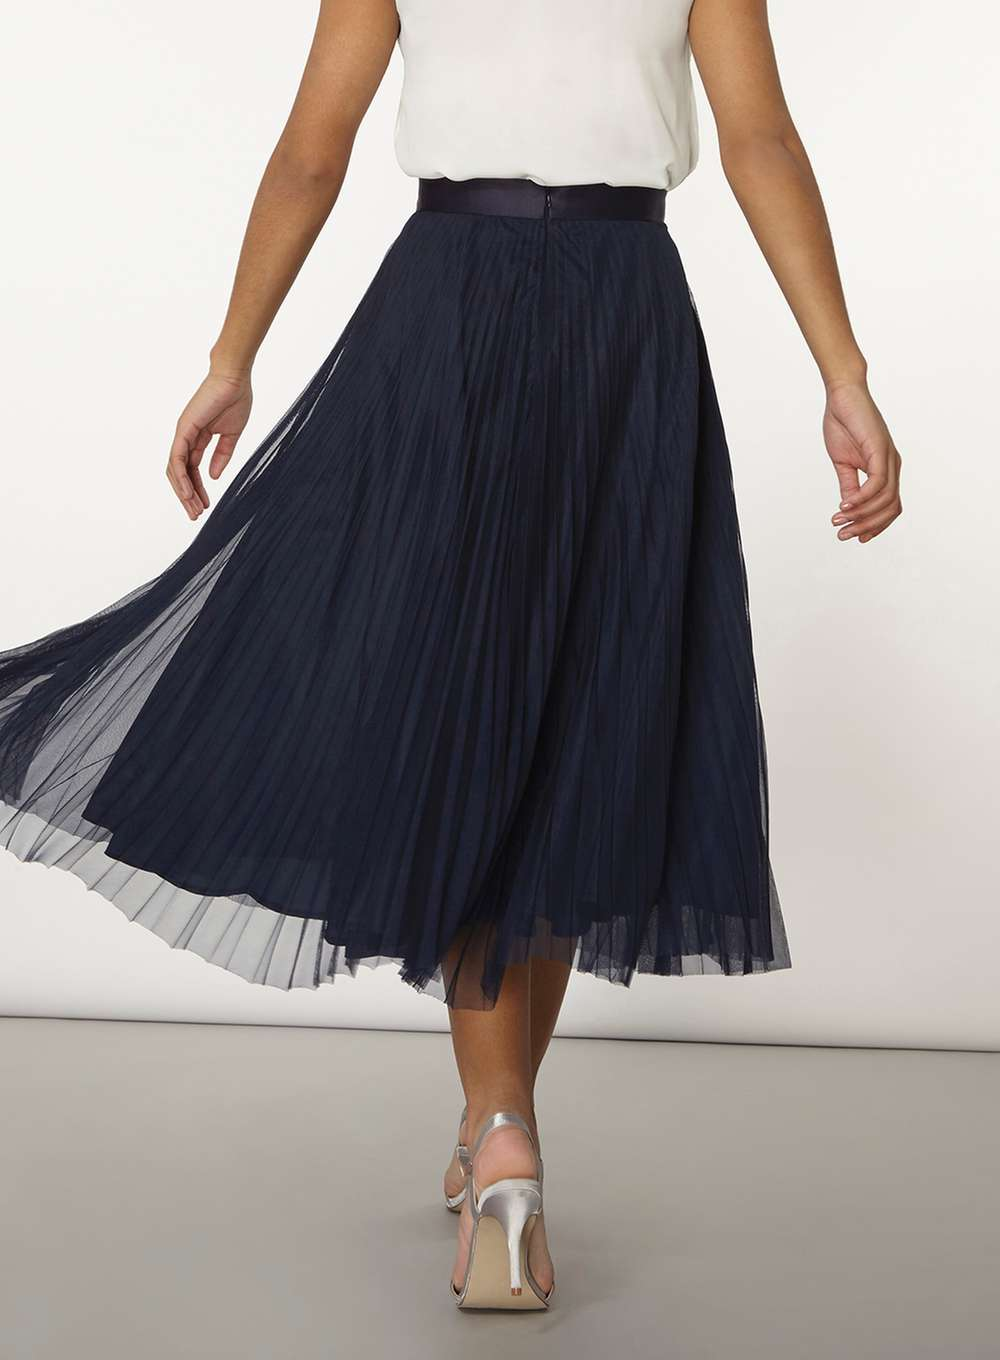 Tulle Skirts for Adults | Tulle Midi Skirt | Grey Tulle Skirt